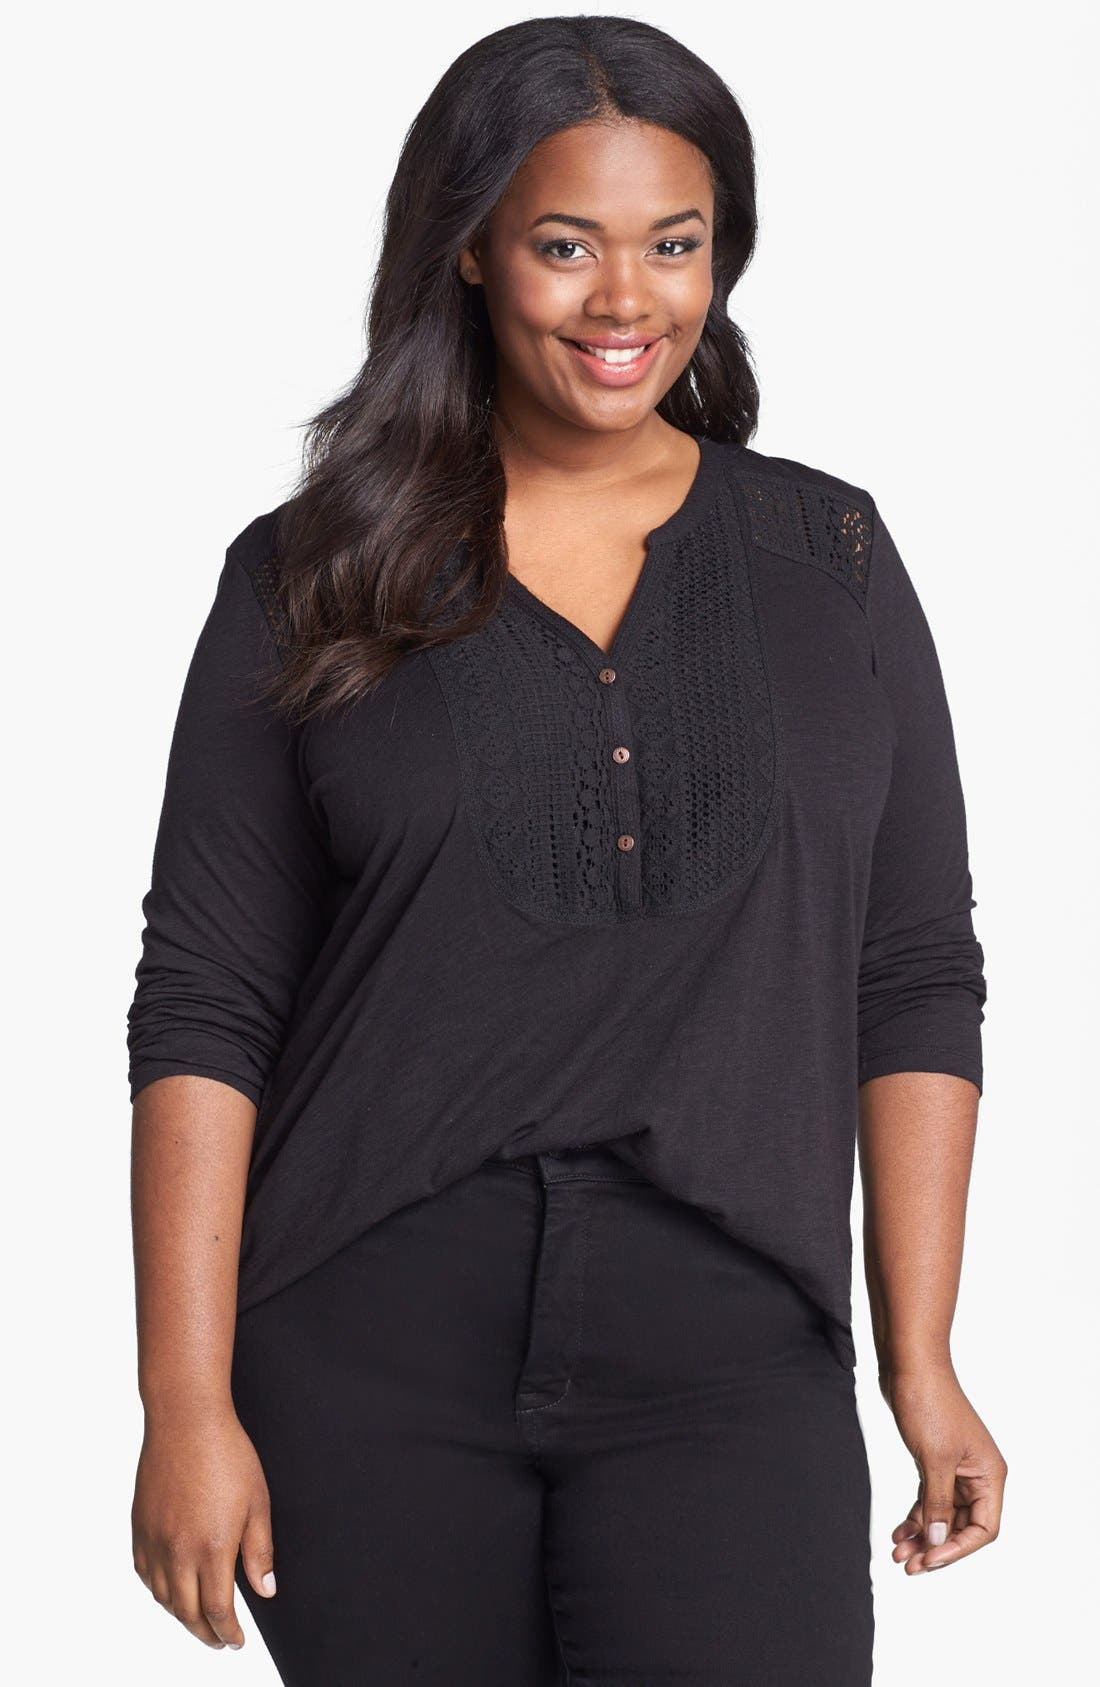 Alternate Image 1 Selected - Lucky Brand Lace Tuxedo Bib Top (Plus Size)